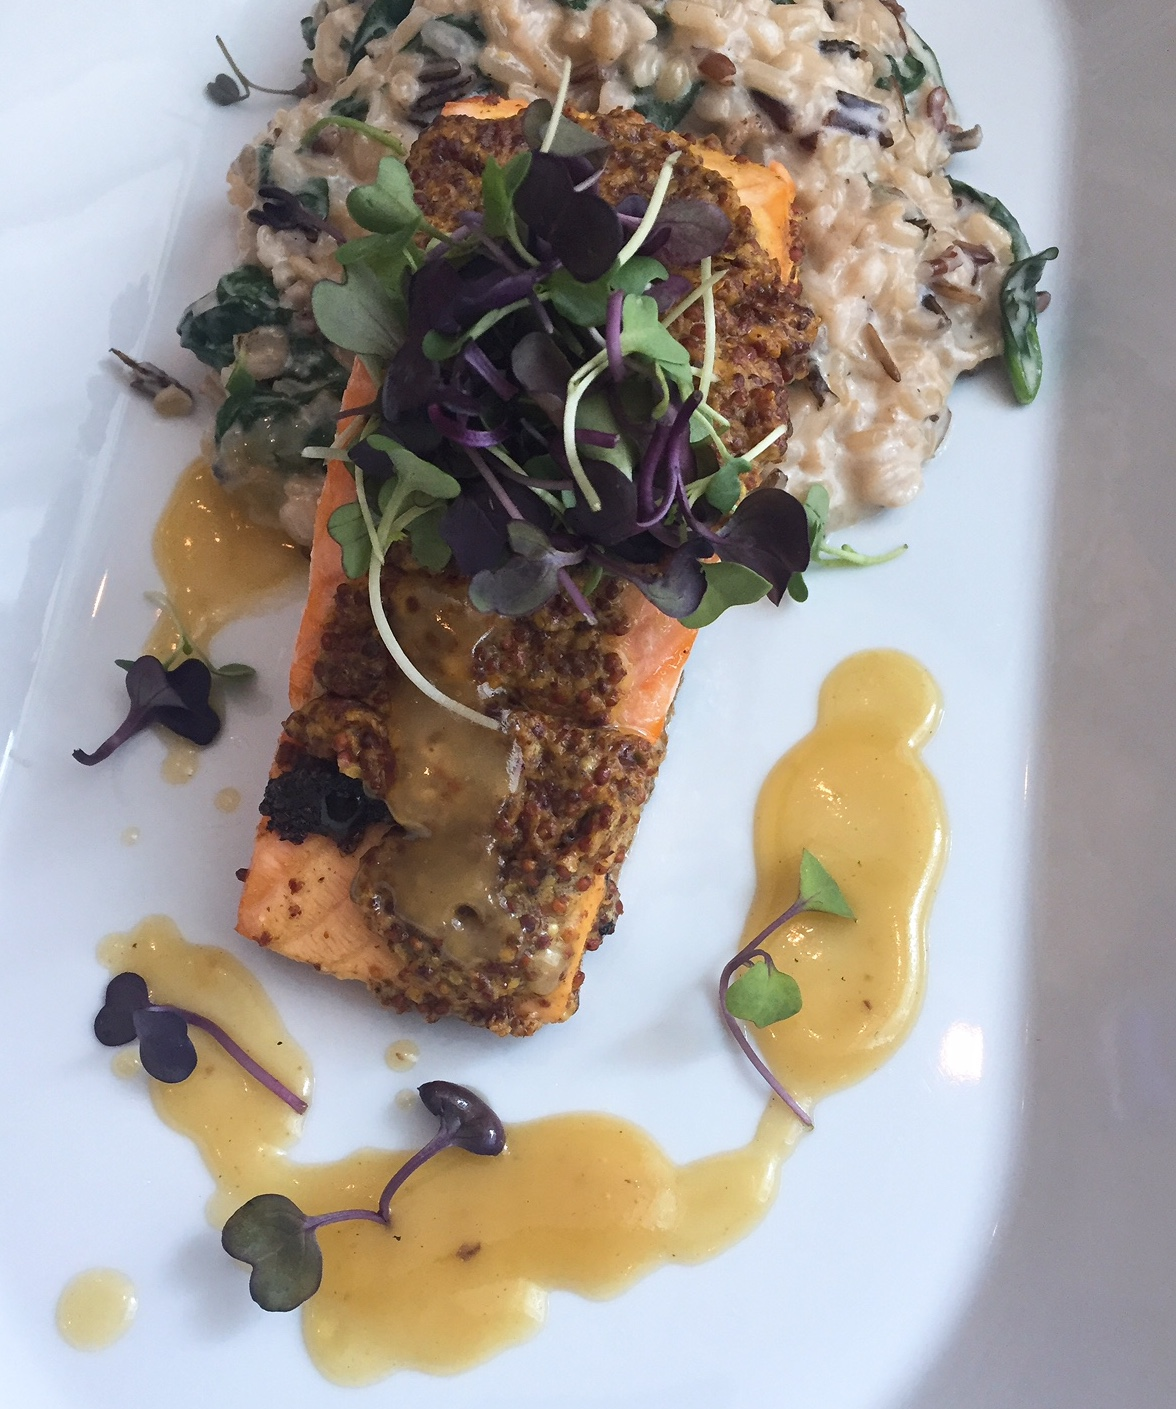 Elia Gourmet's mustard crusted salmon with mushroom risotto.